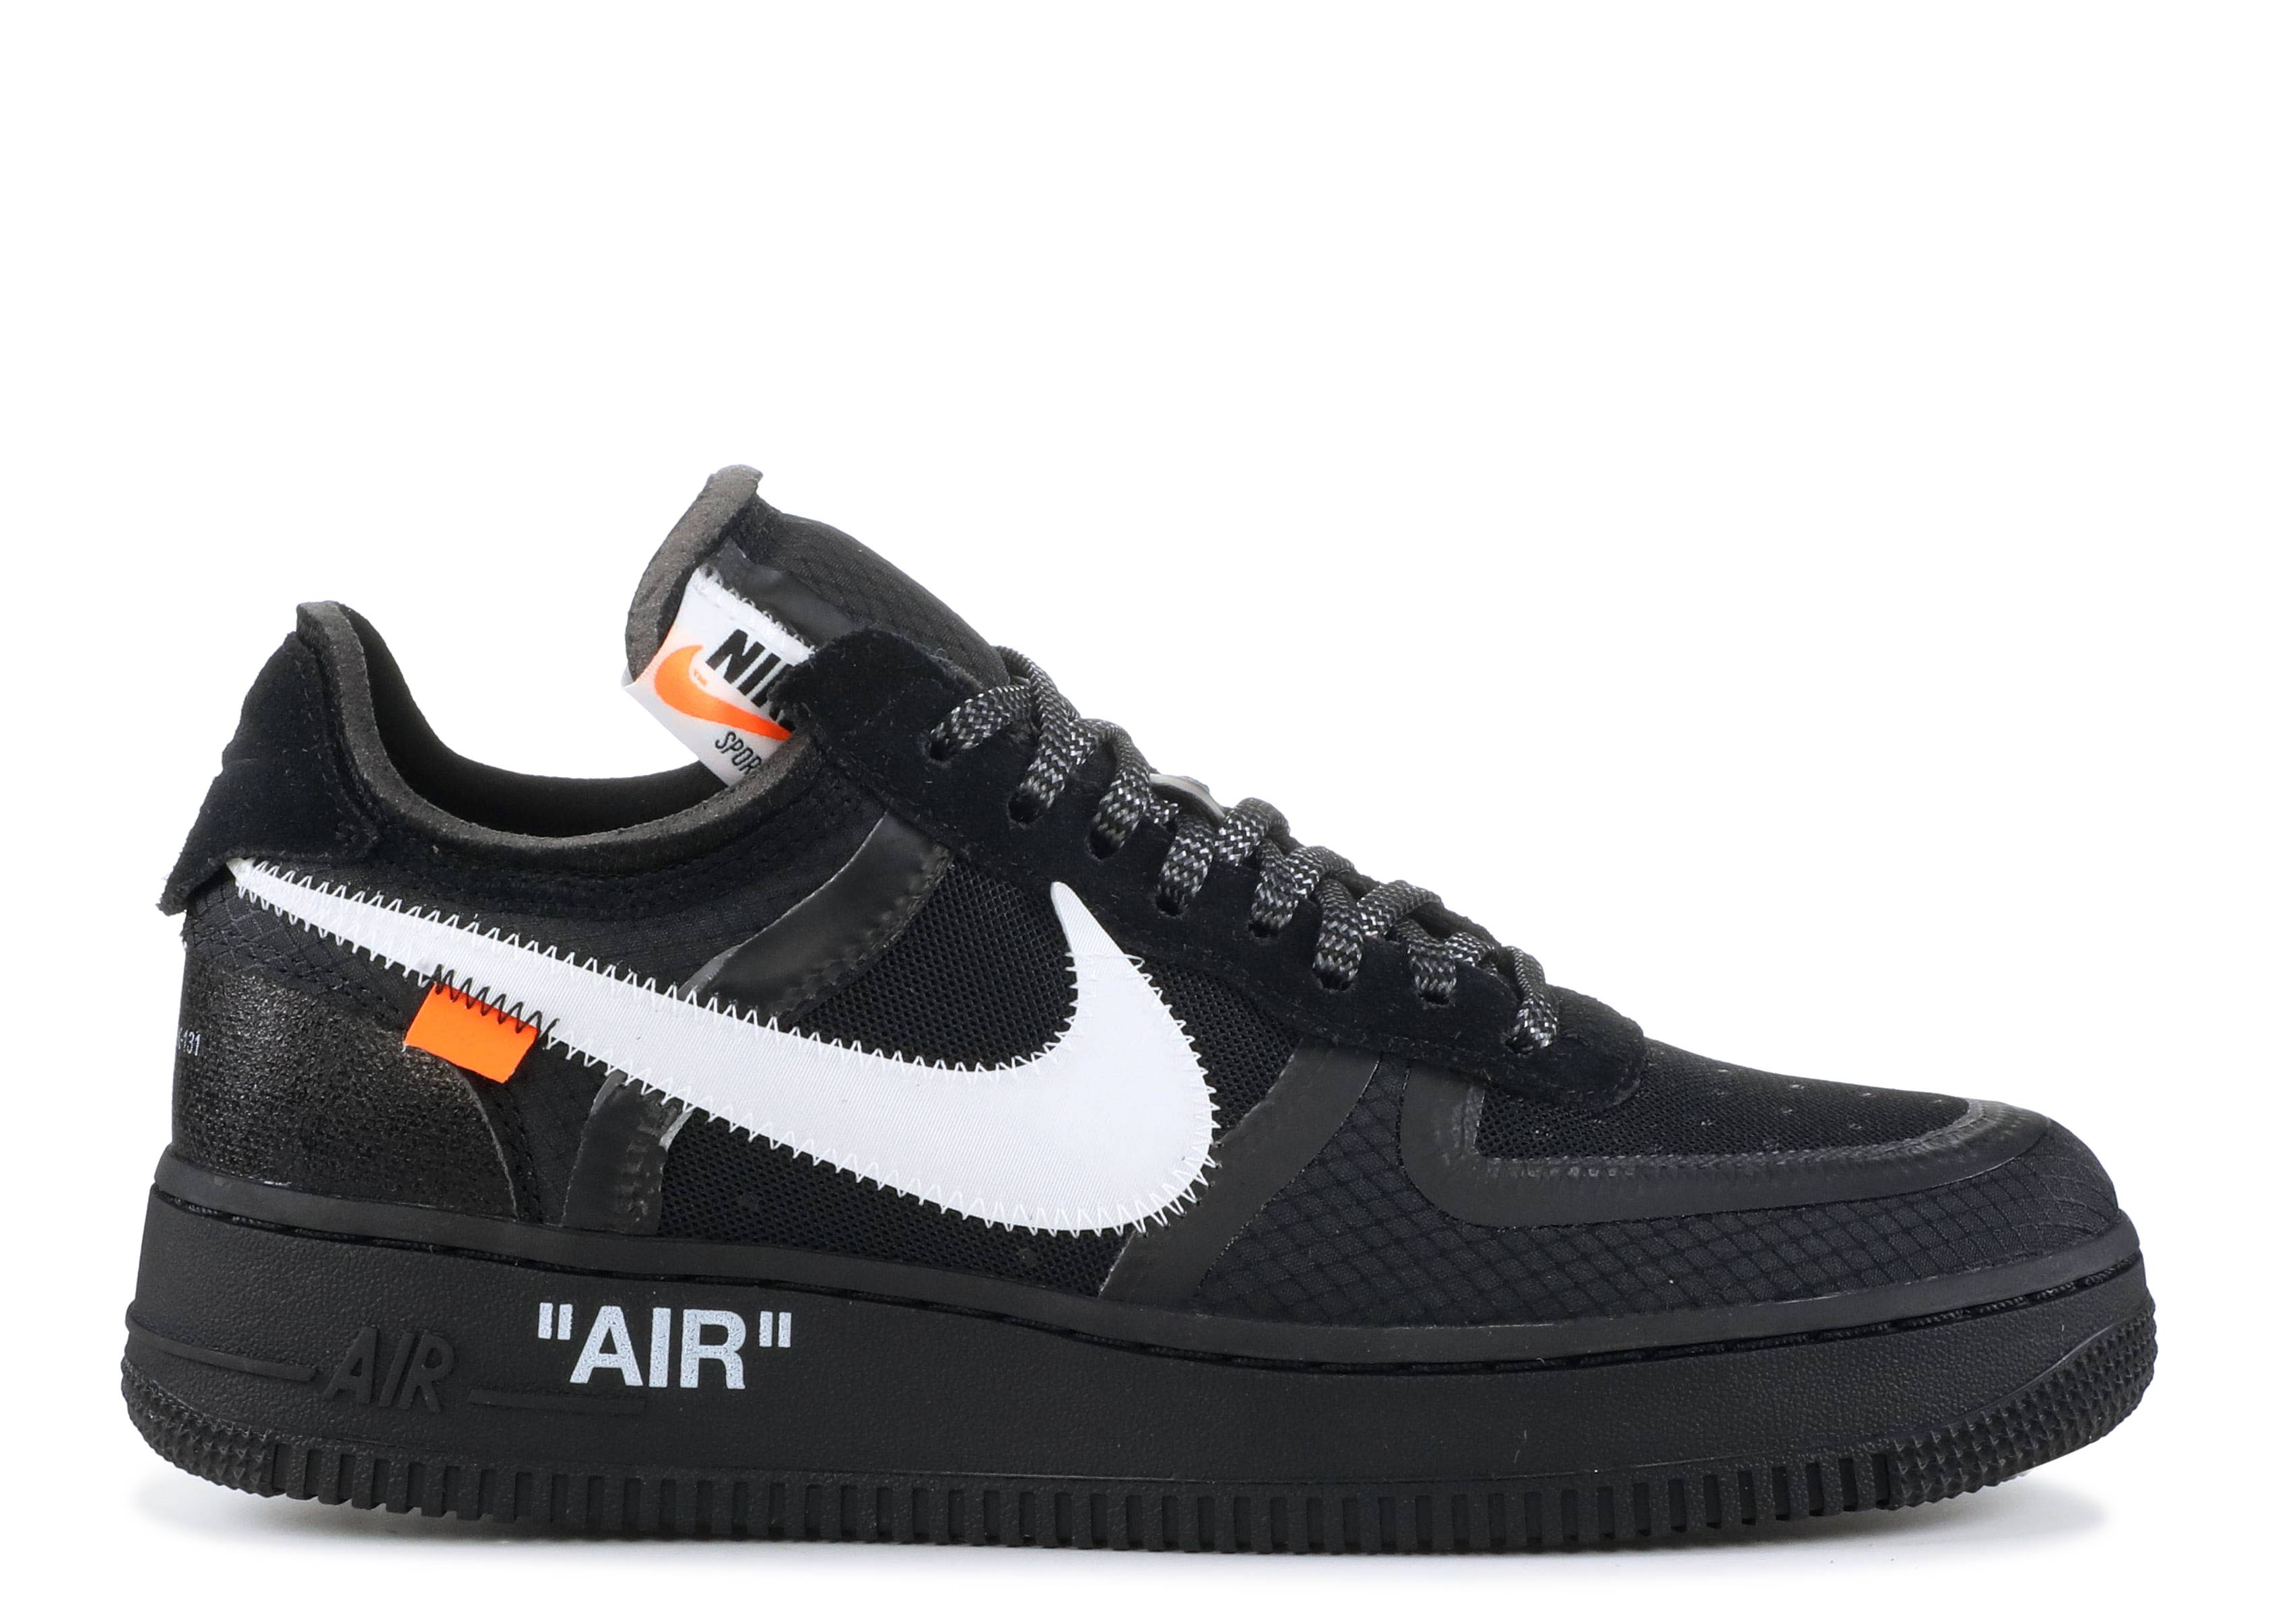 Colega Descanso dirigir  Off White X Air Force 1 Low 'off White' - Nike - AO4606 001 - black/white-cone-black  | Flight Club